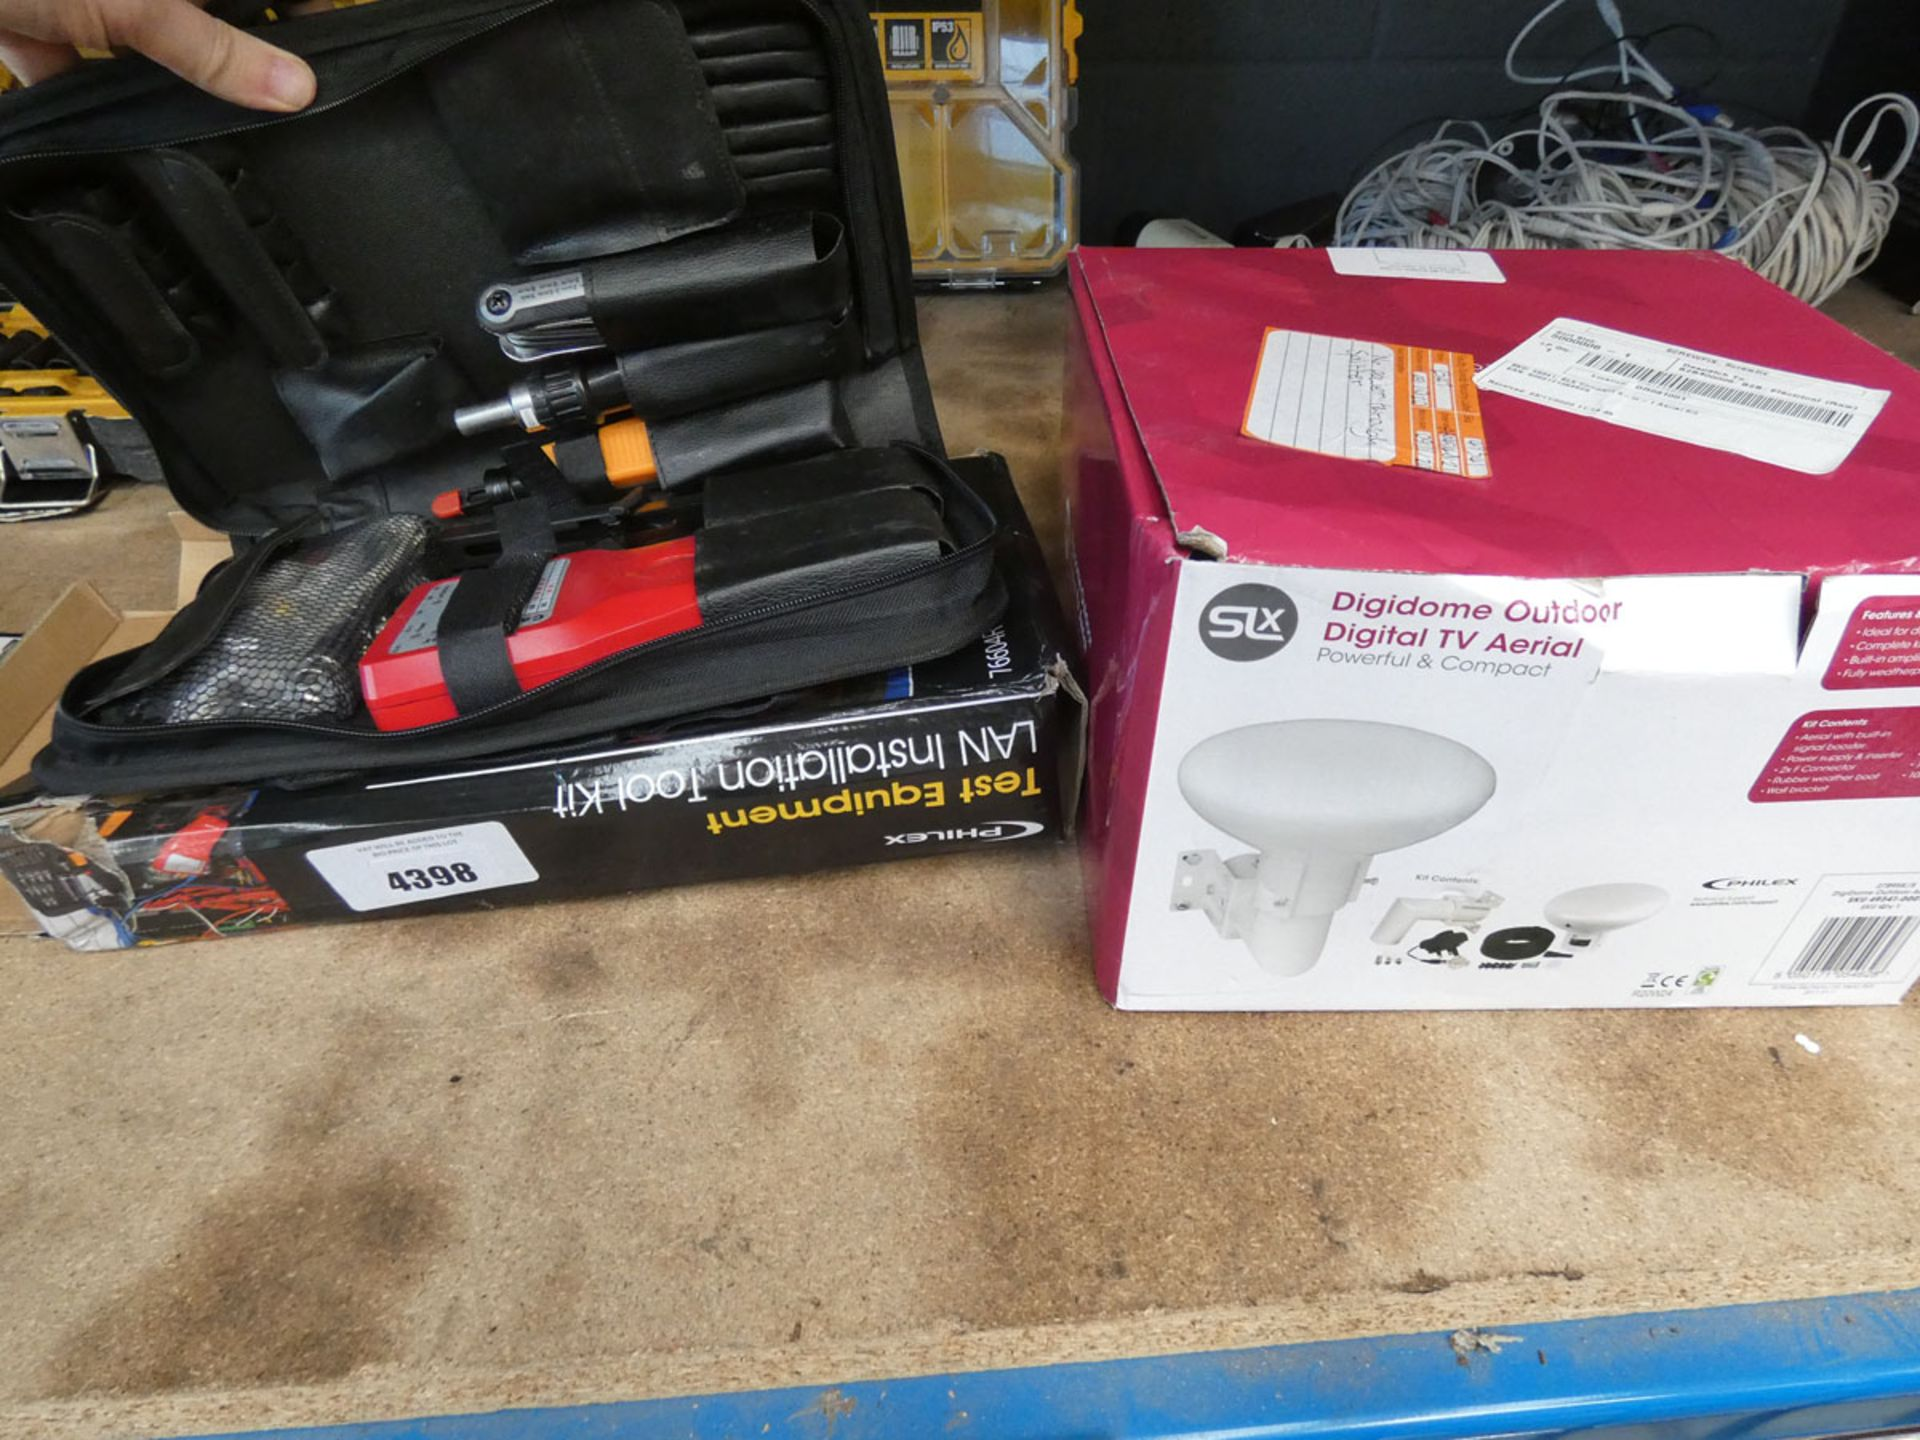 4695 - LAN installation toolkit and a digital TV aerial